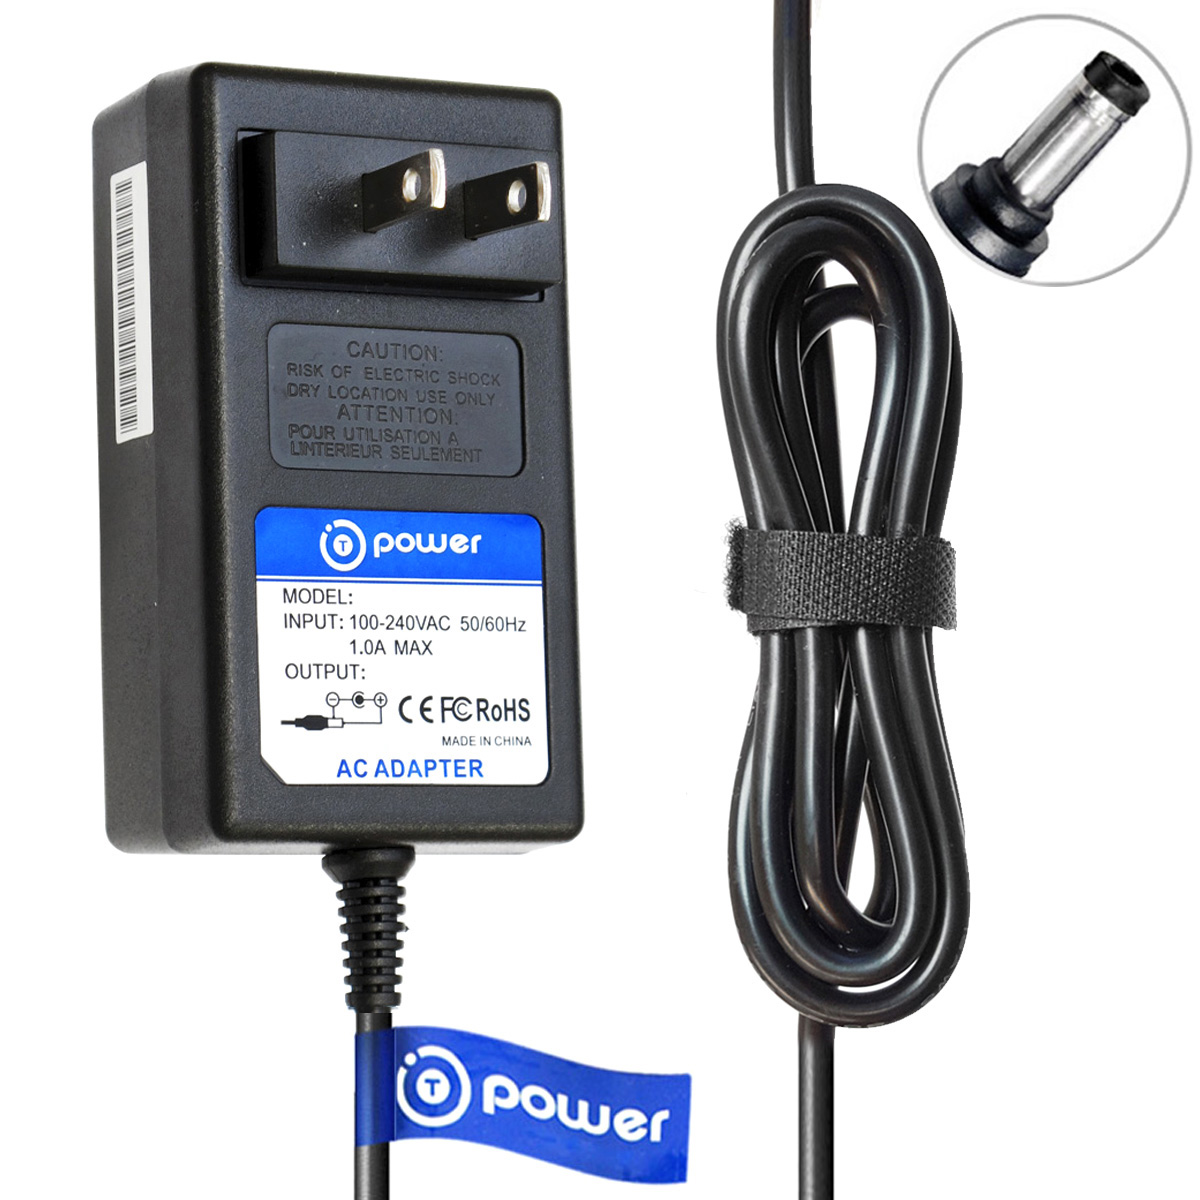 NEW 19V AC//DC Adapter For VIZIO Model SADP-65NB AB Power Supply Battery Charger